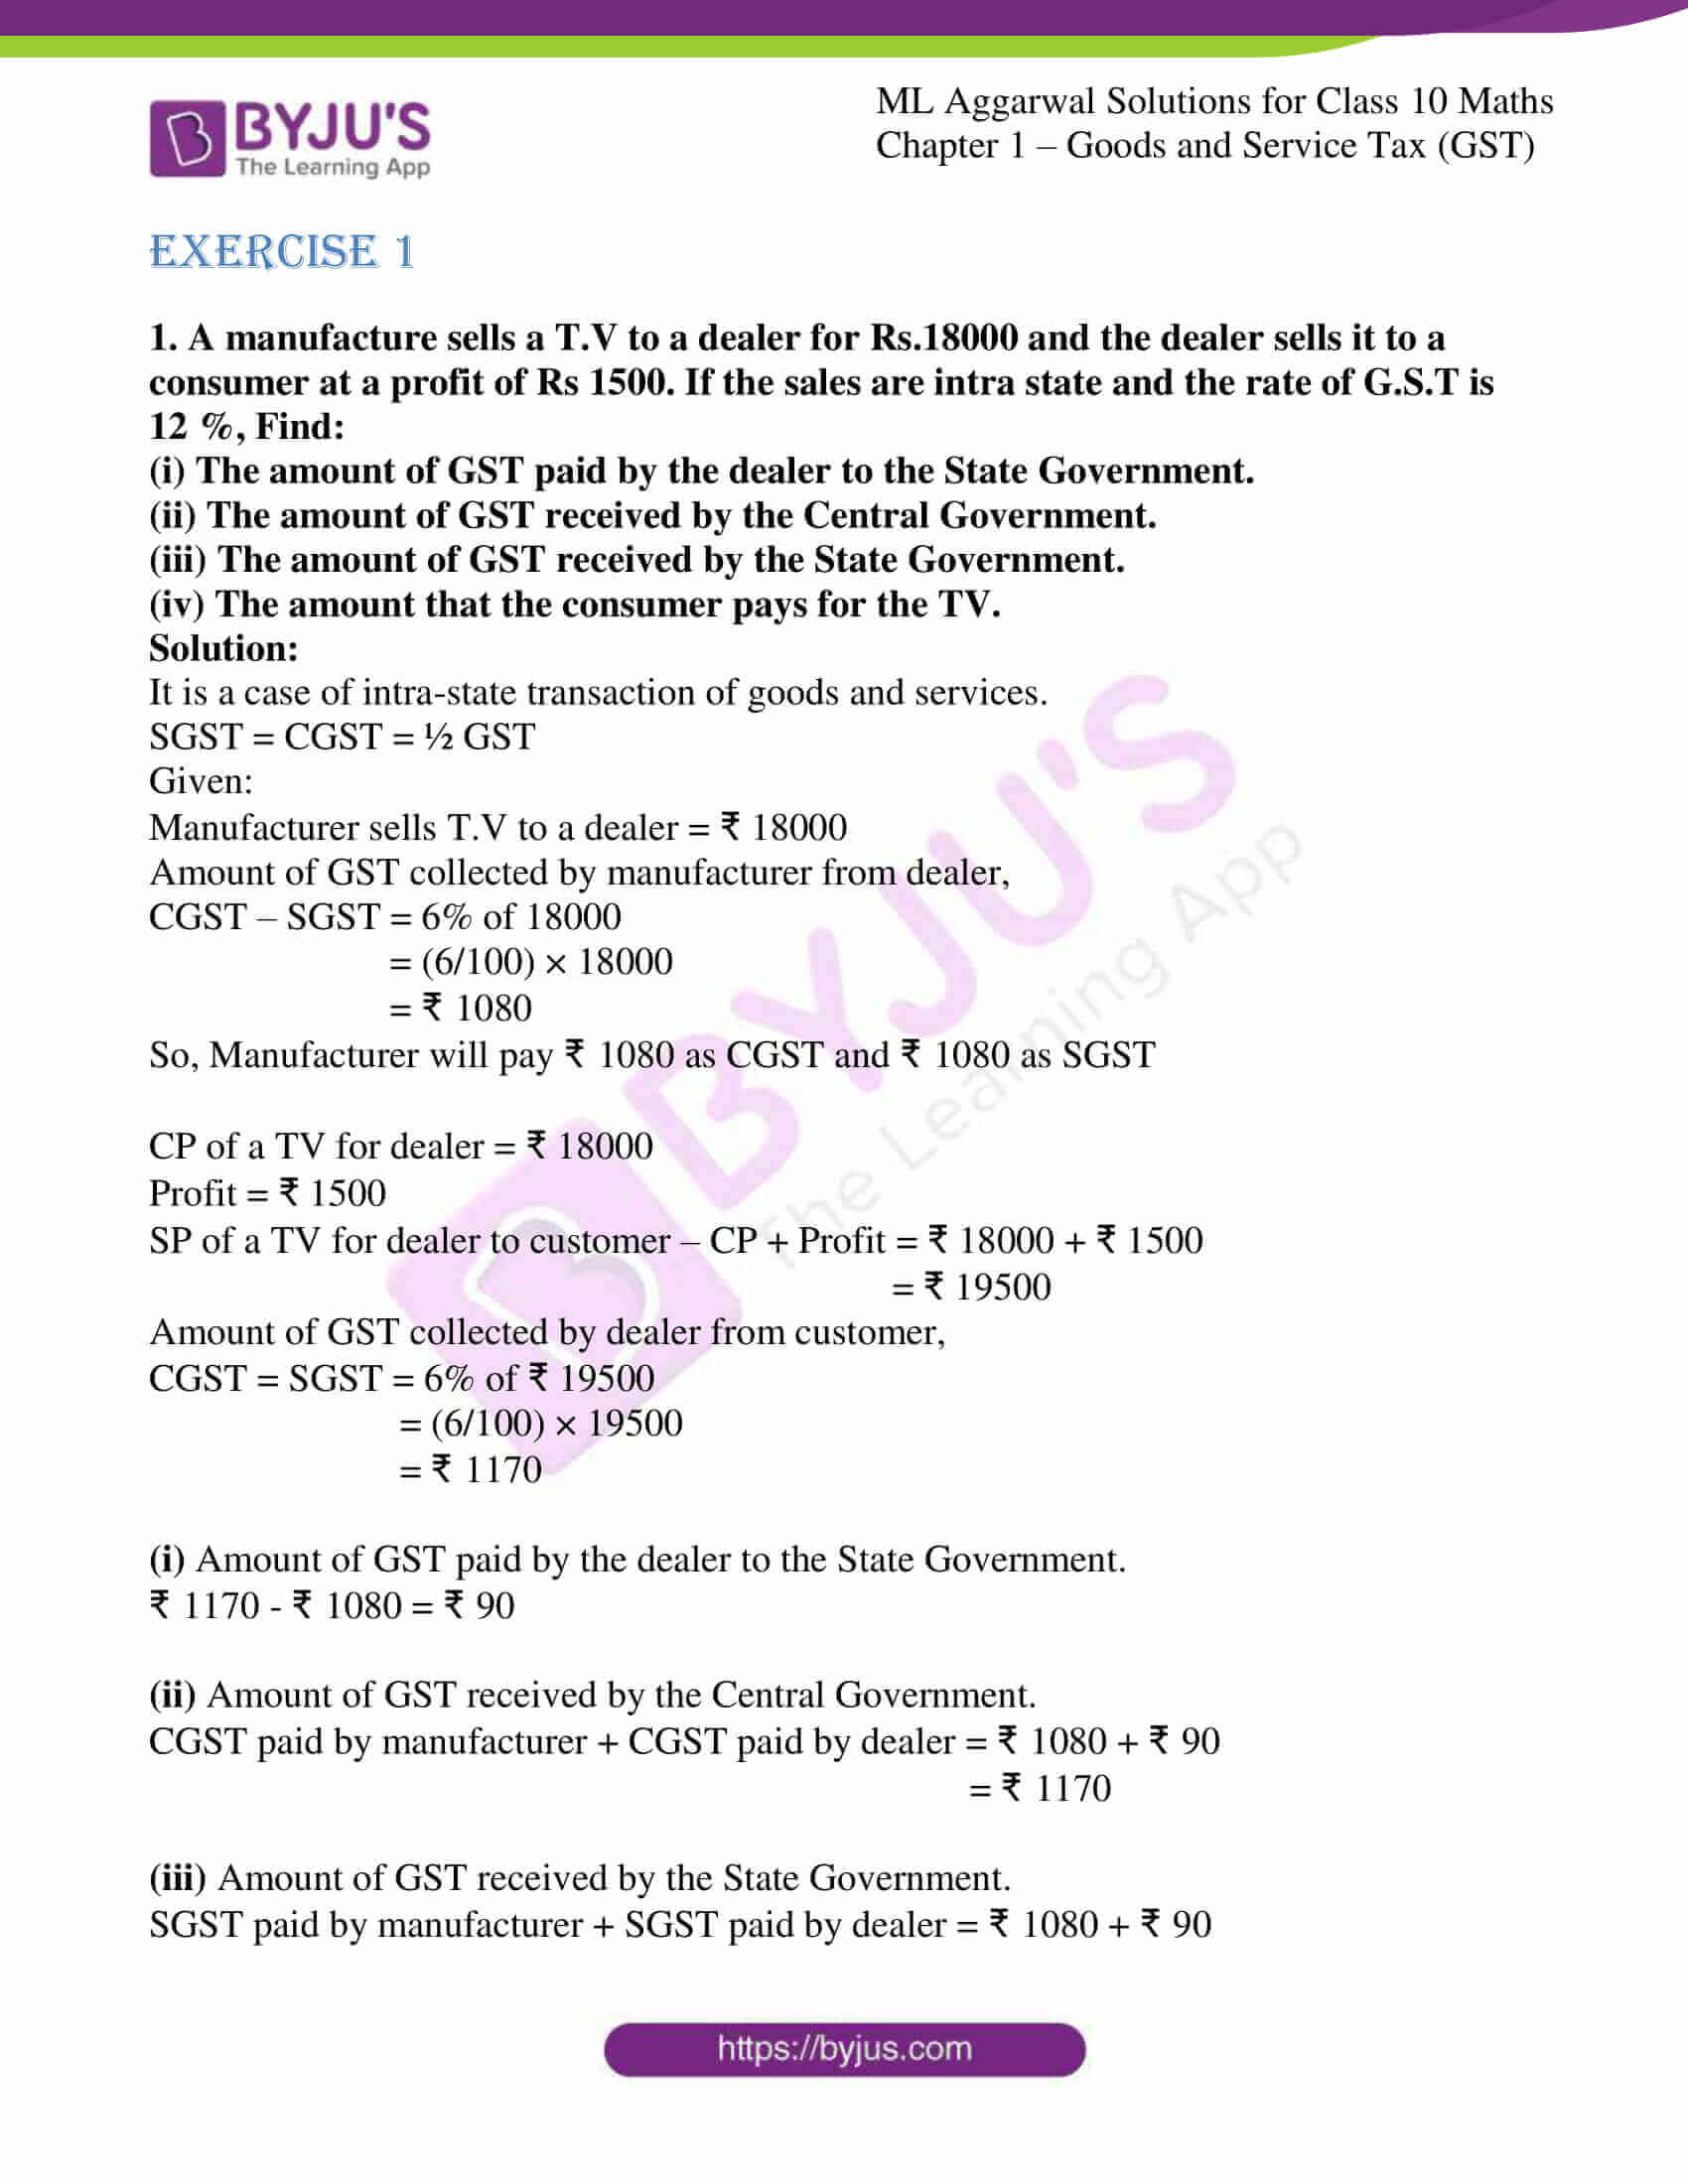 ml aggarwal solutions class 10 maths chapter 1 01